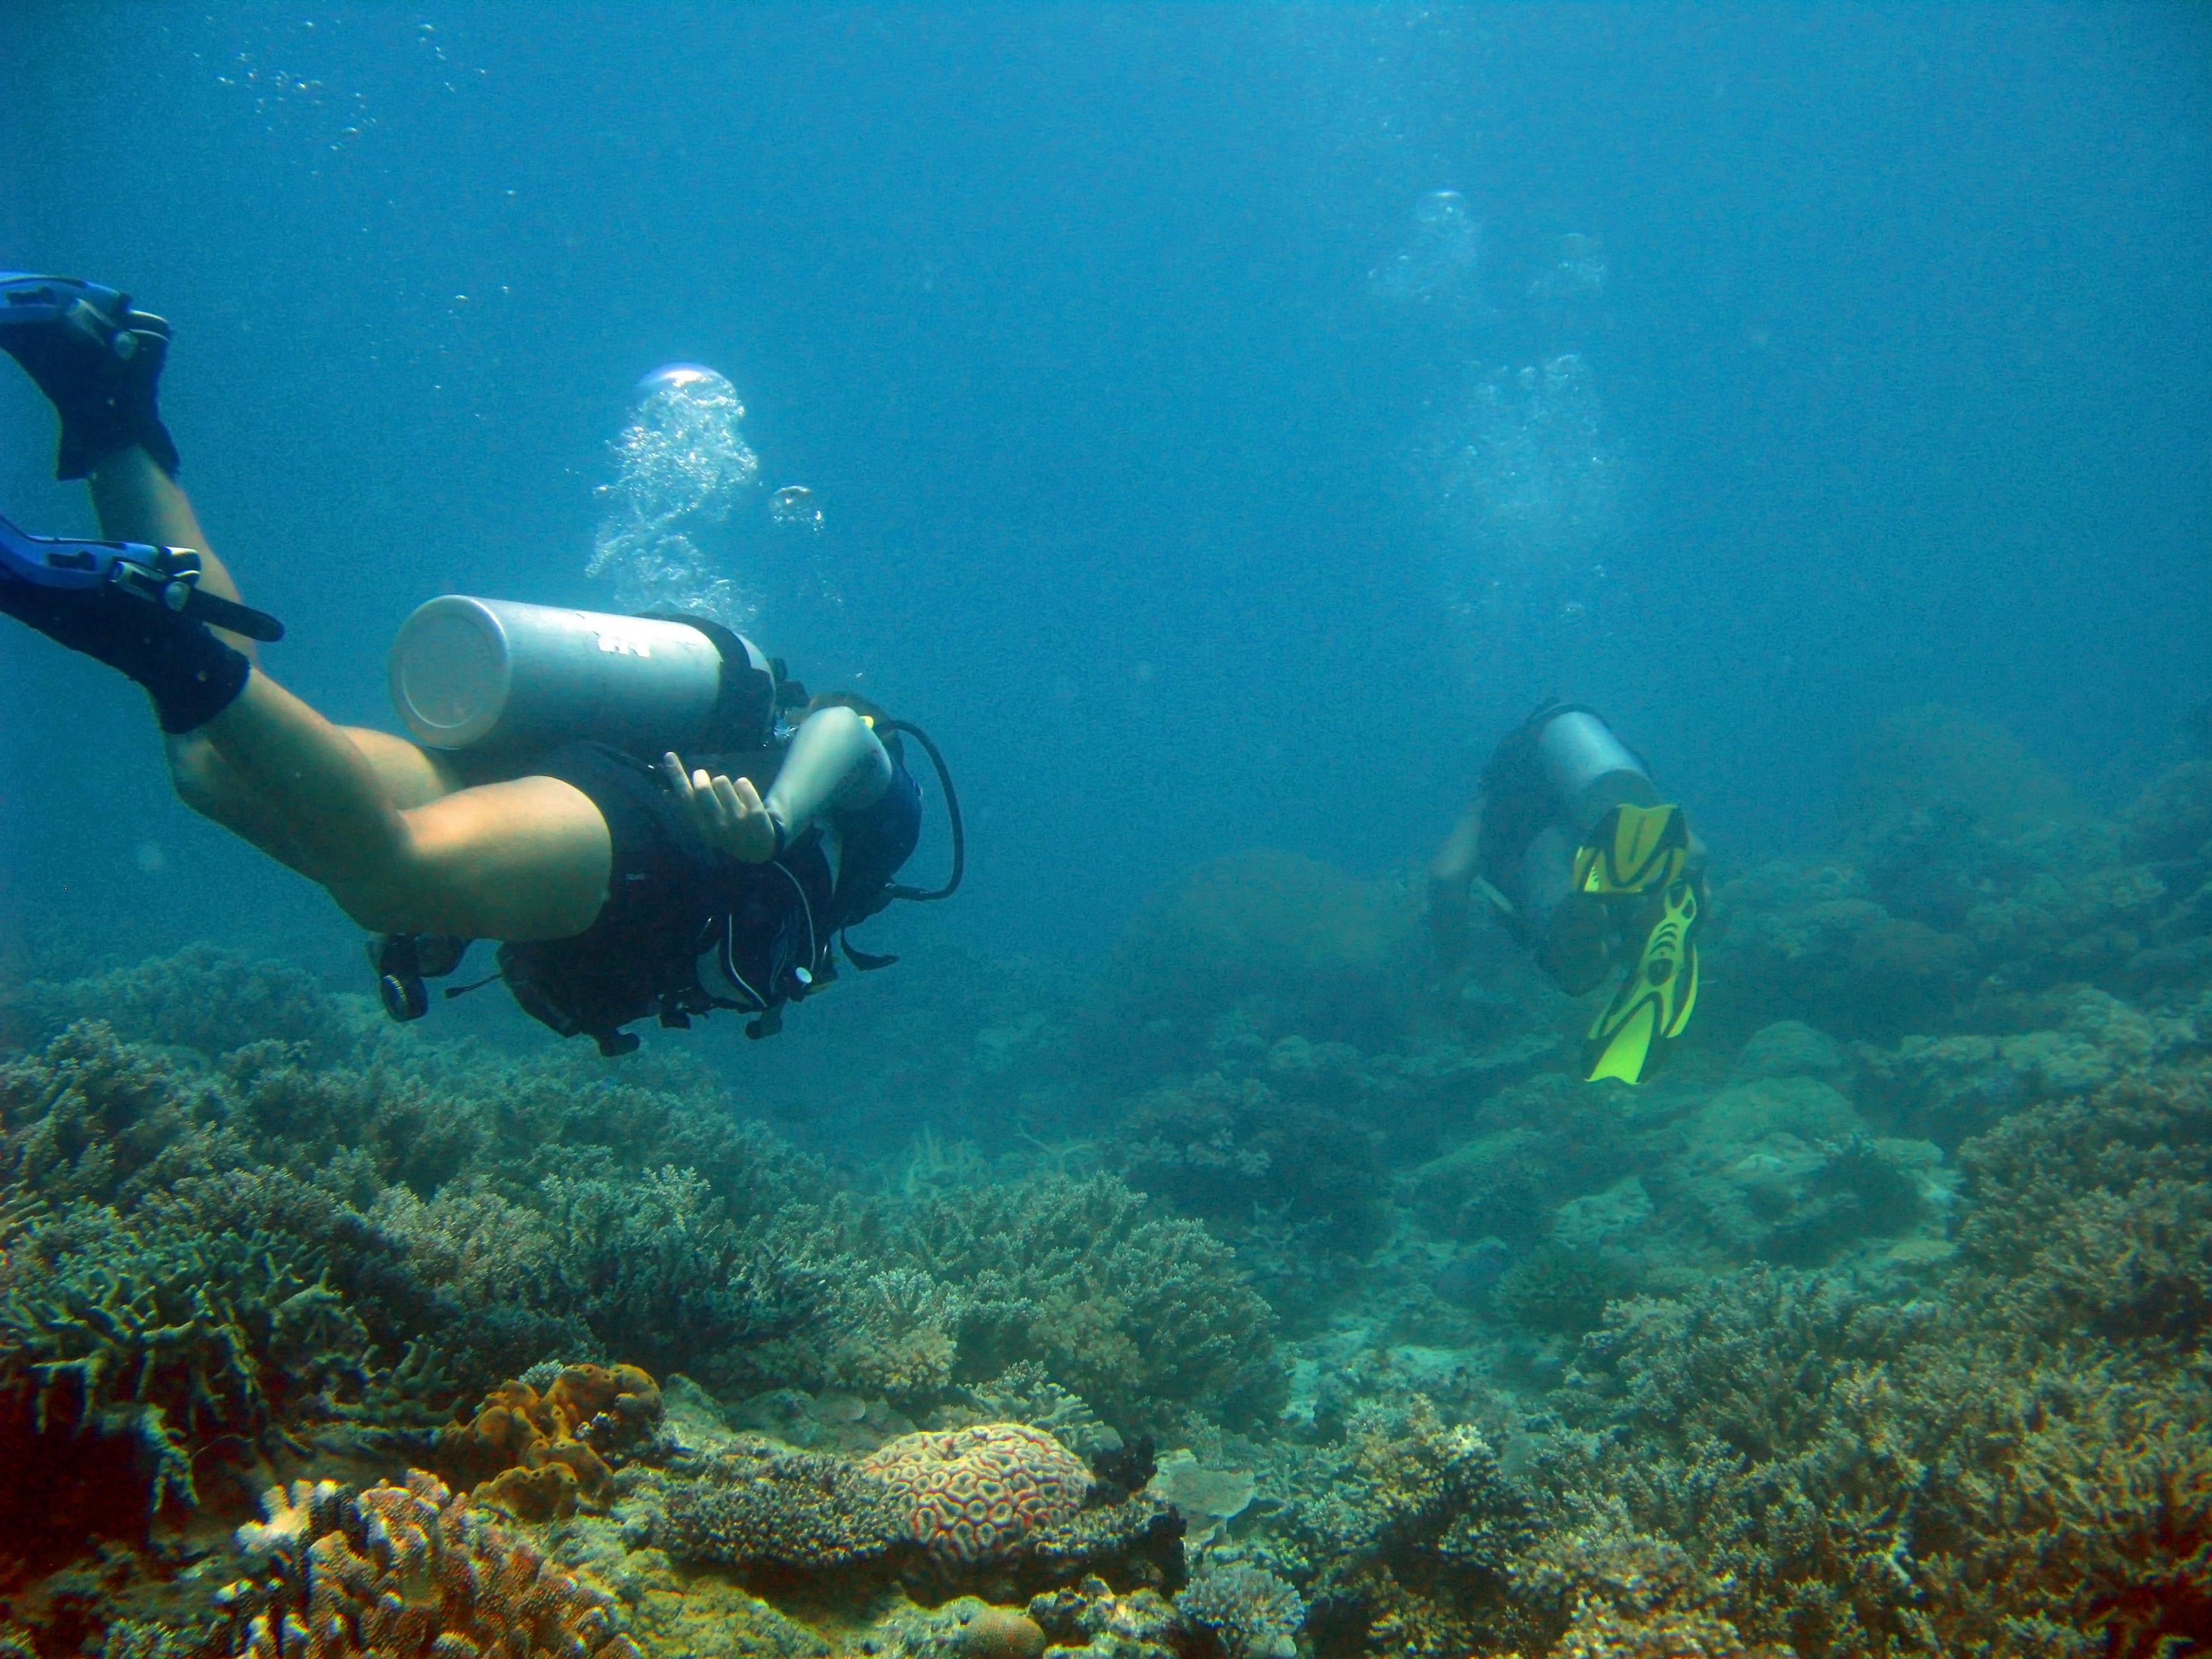 Two people scuba diving underwater on an offshore coral reef exploring the biodiversity of marine life